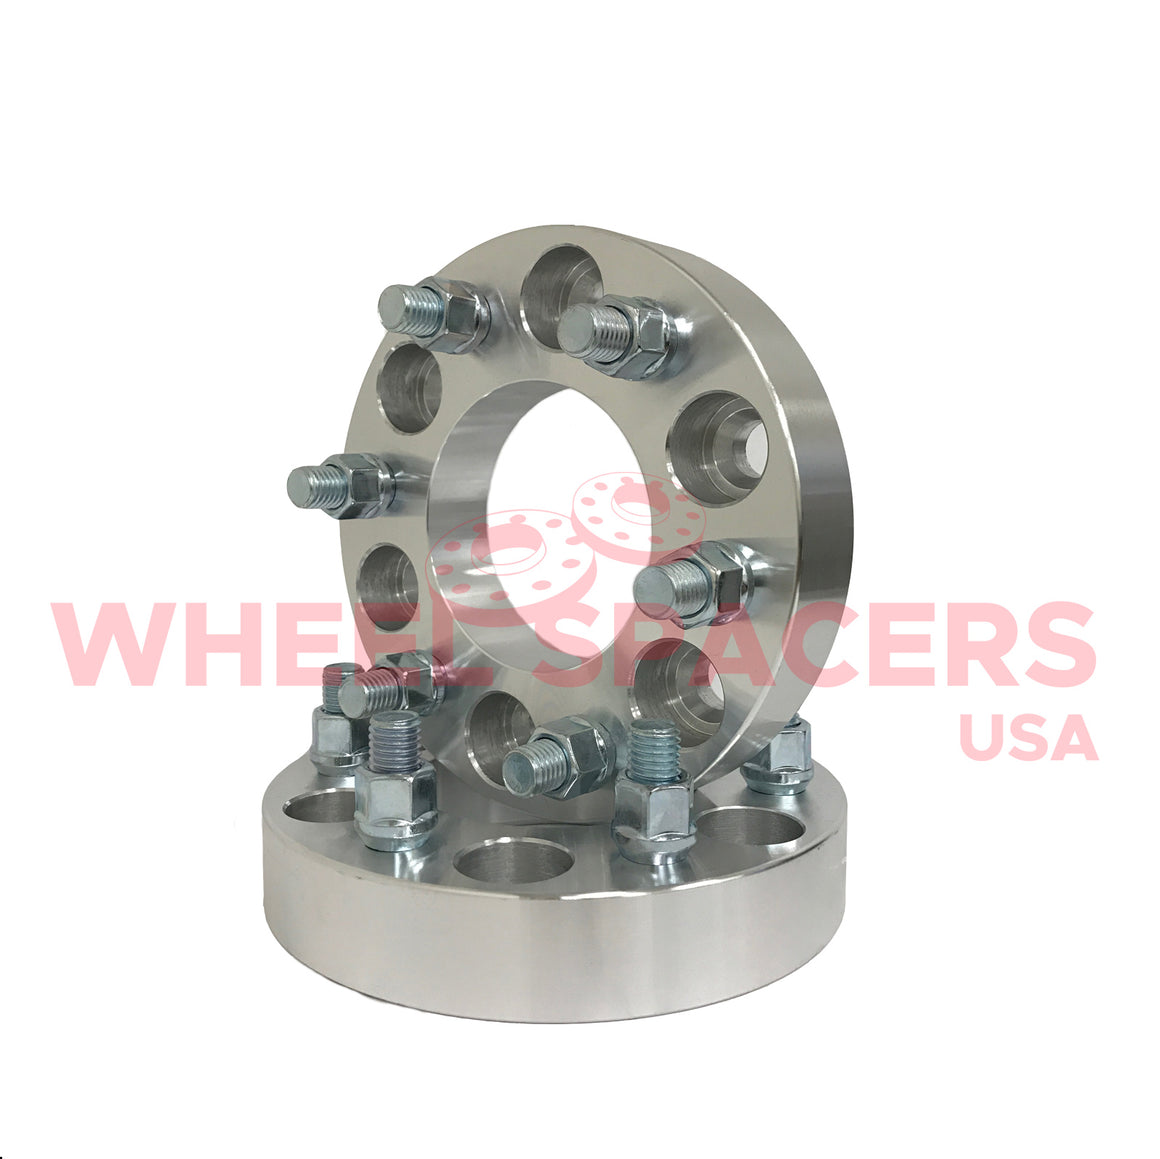 2) 6x135 Hub Centric Wheel Spacers For 2015 & Newer F-150 6 Lug Trucks 14x1.5 Threads 87.1mm Hub and Wheel Centric Bore